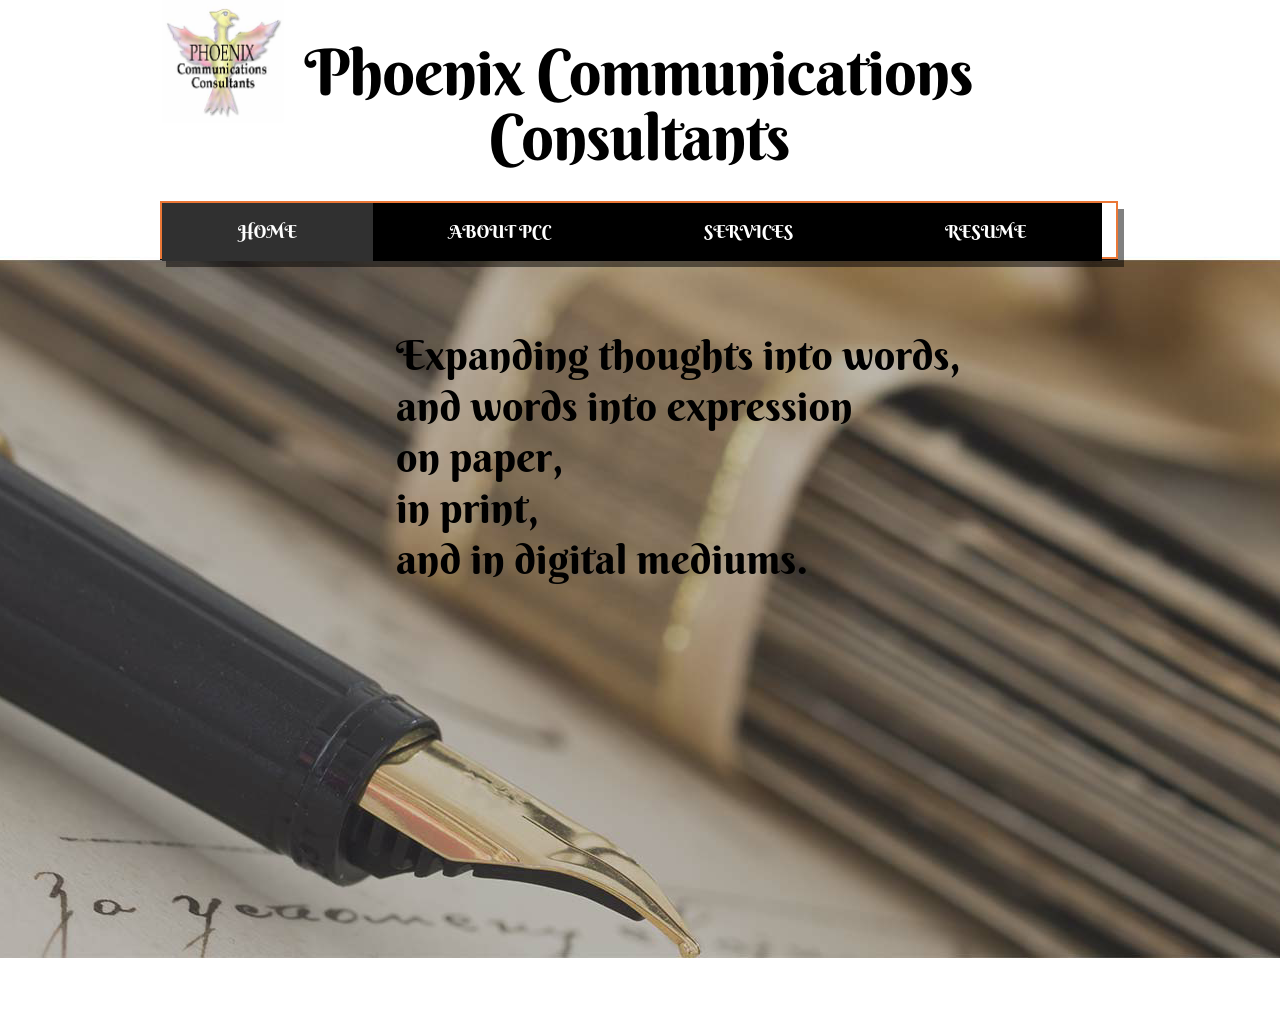 Phoenix-Communications-Consultants-Advertising-Reviews-Pricing